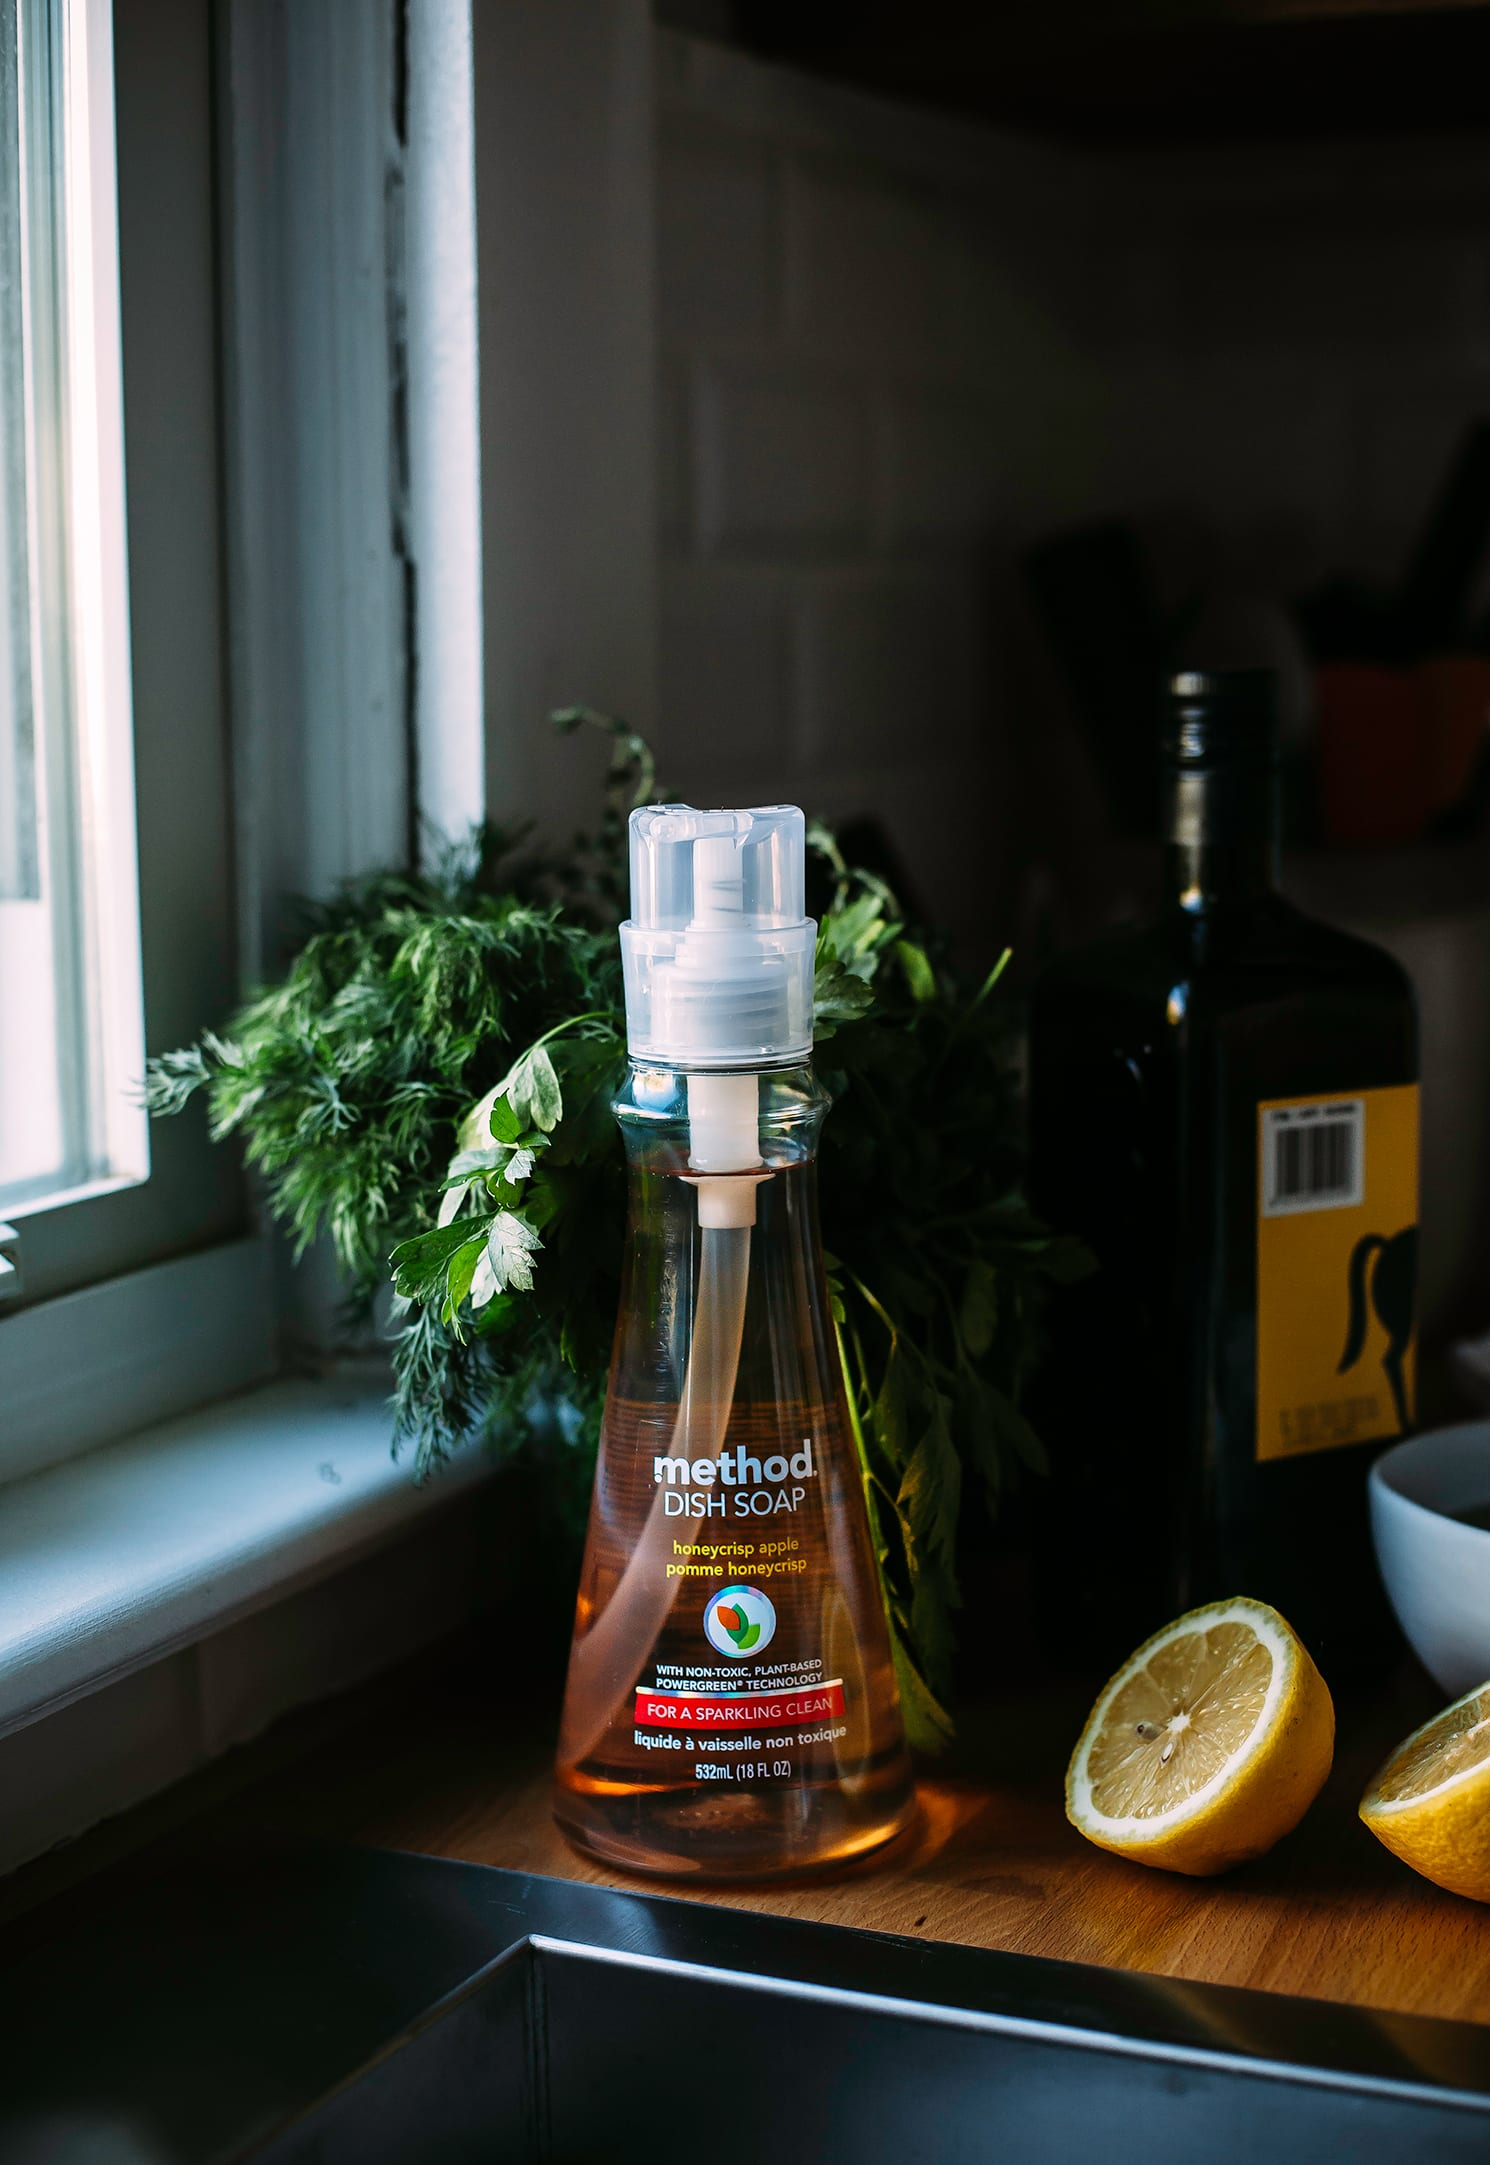 Image shows a bottle of dish soap by a kitchen sink.